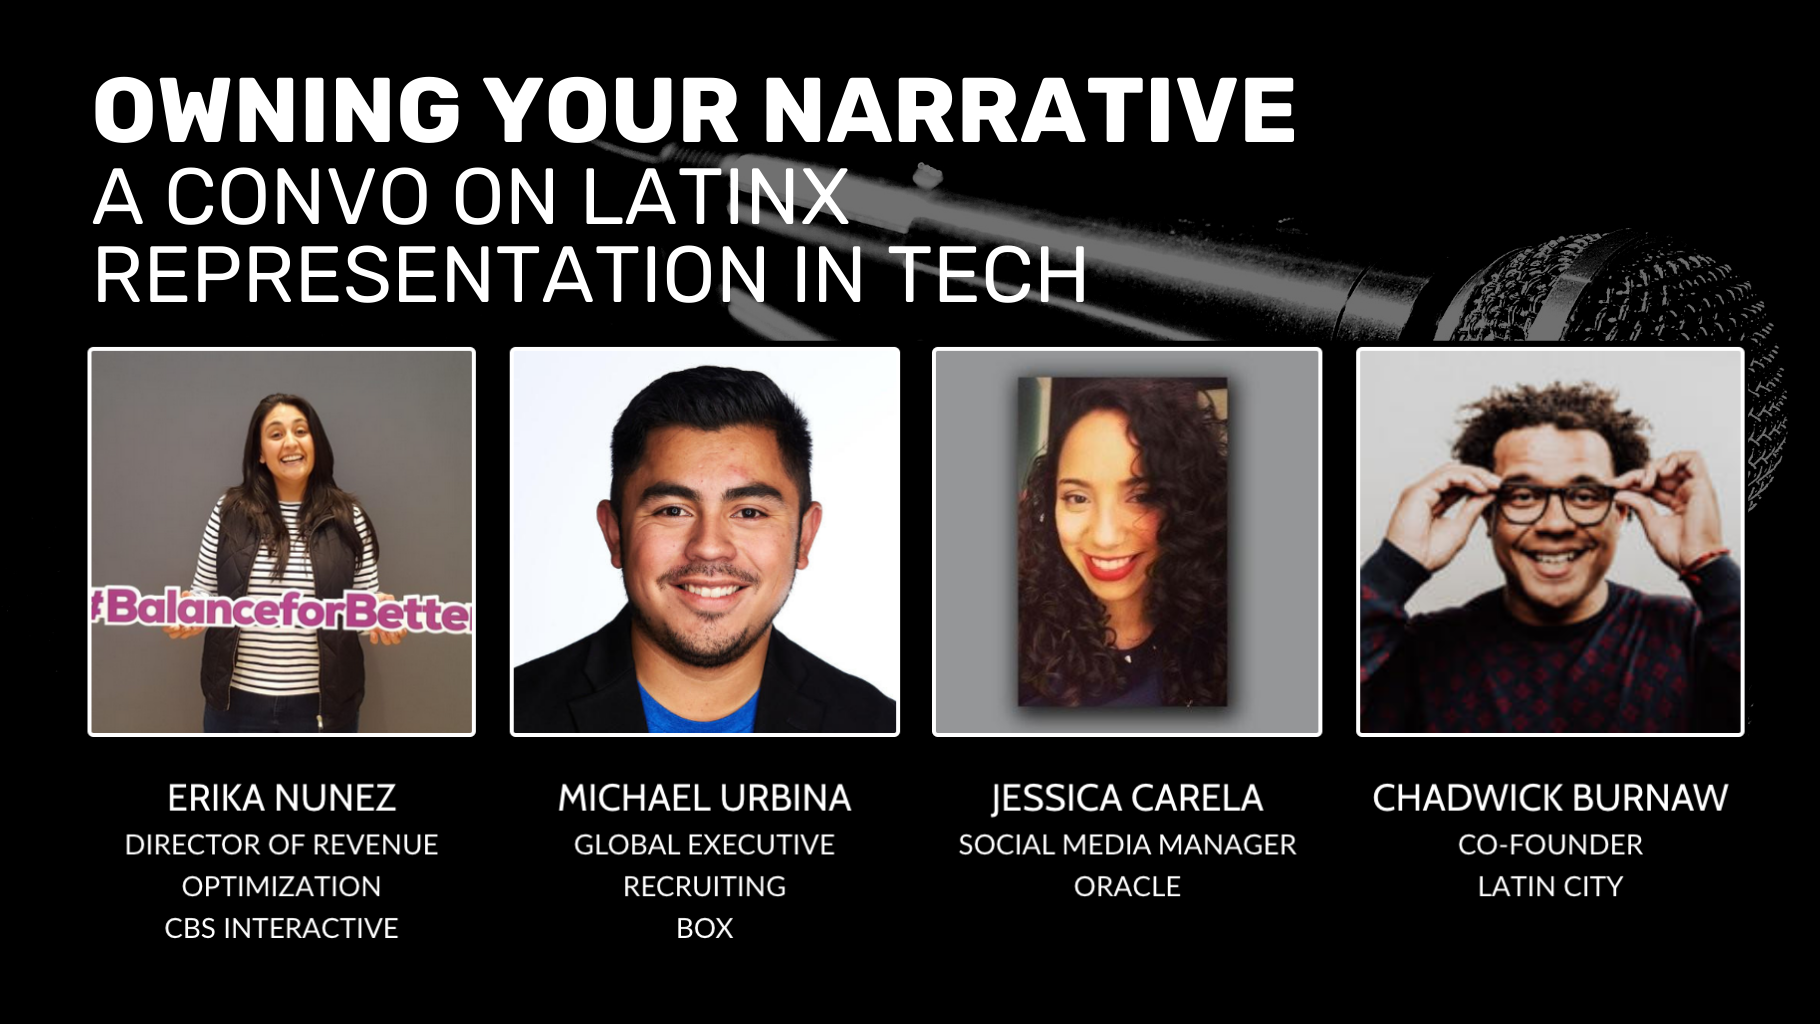 Owning Your Narrative: A Conversation on Latinx Representation